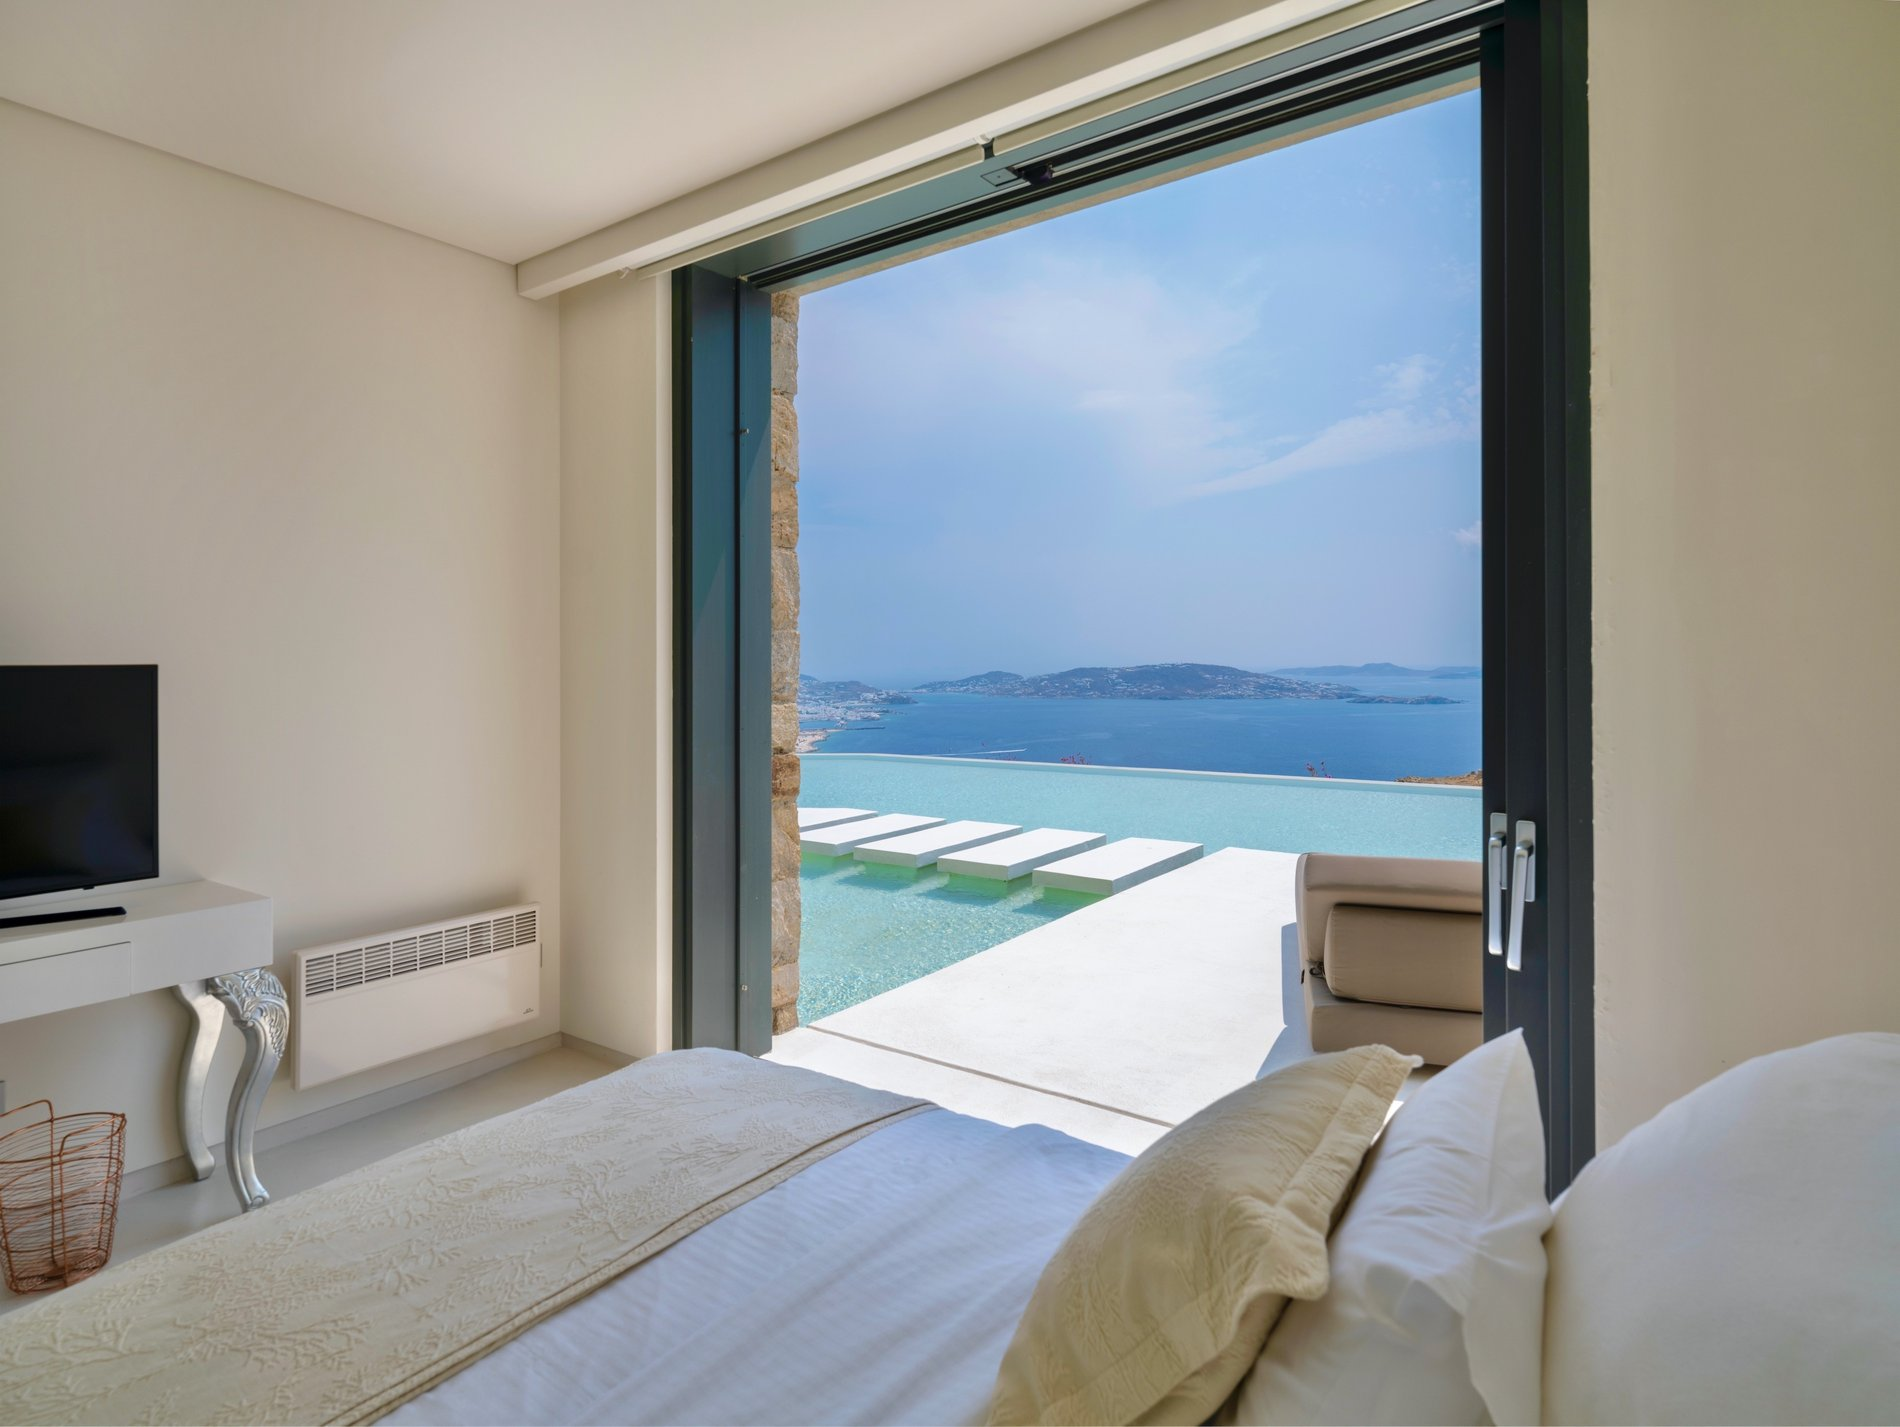 Bedroom with gliding patio door, access to the infinity pool and Mediterranean views.